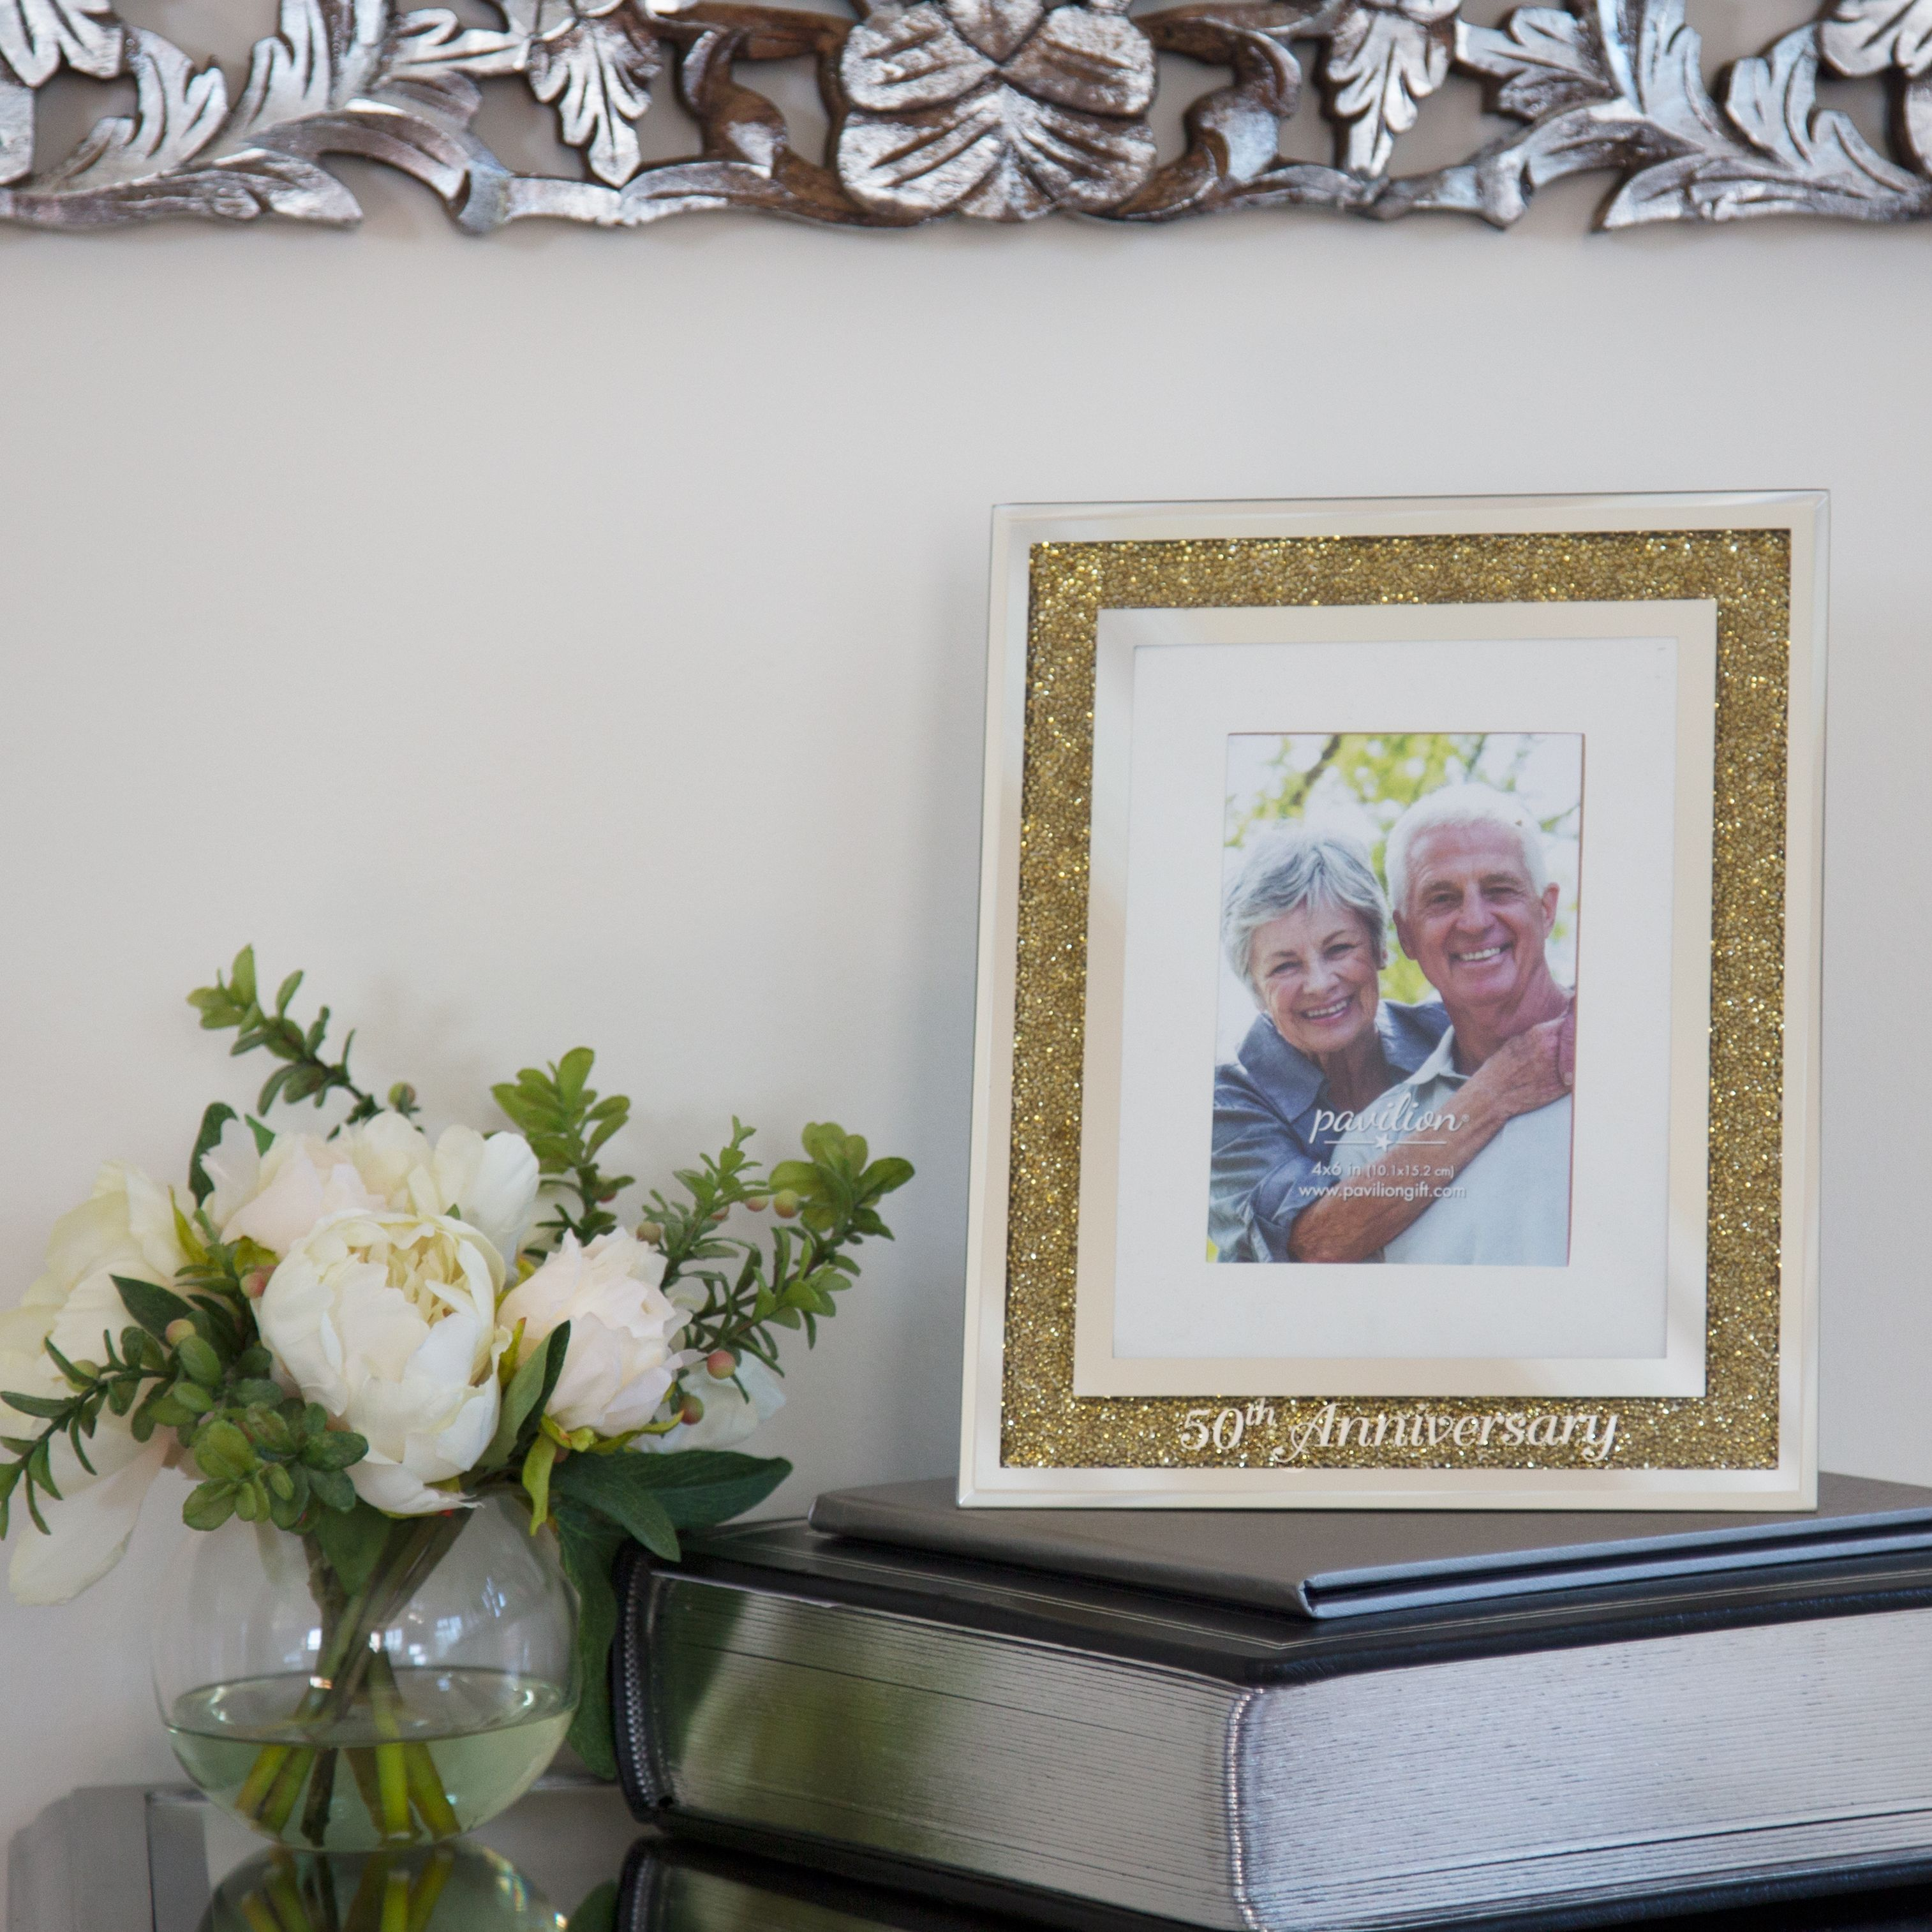 50th Anniversary Gold Bead Mirrored 4x6 Picture Frame | Glorious ...